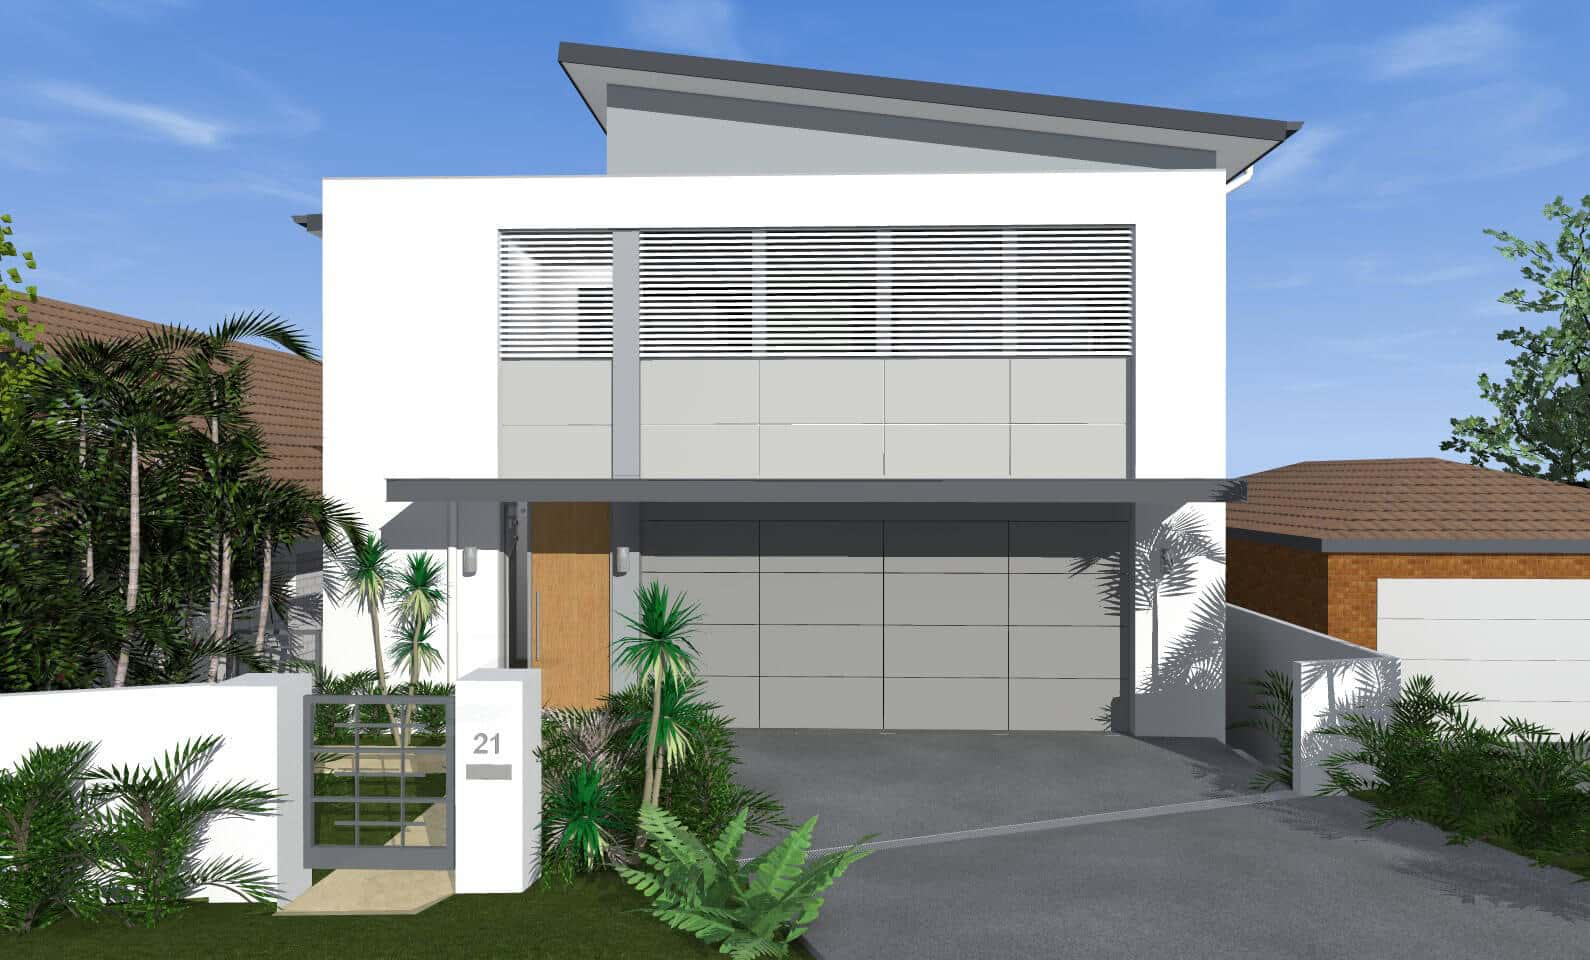 Edge House Collaroy Plateau - New home concept in 3D designed by All Australian Architecture